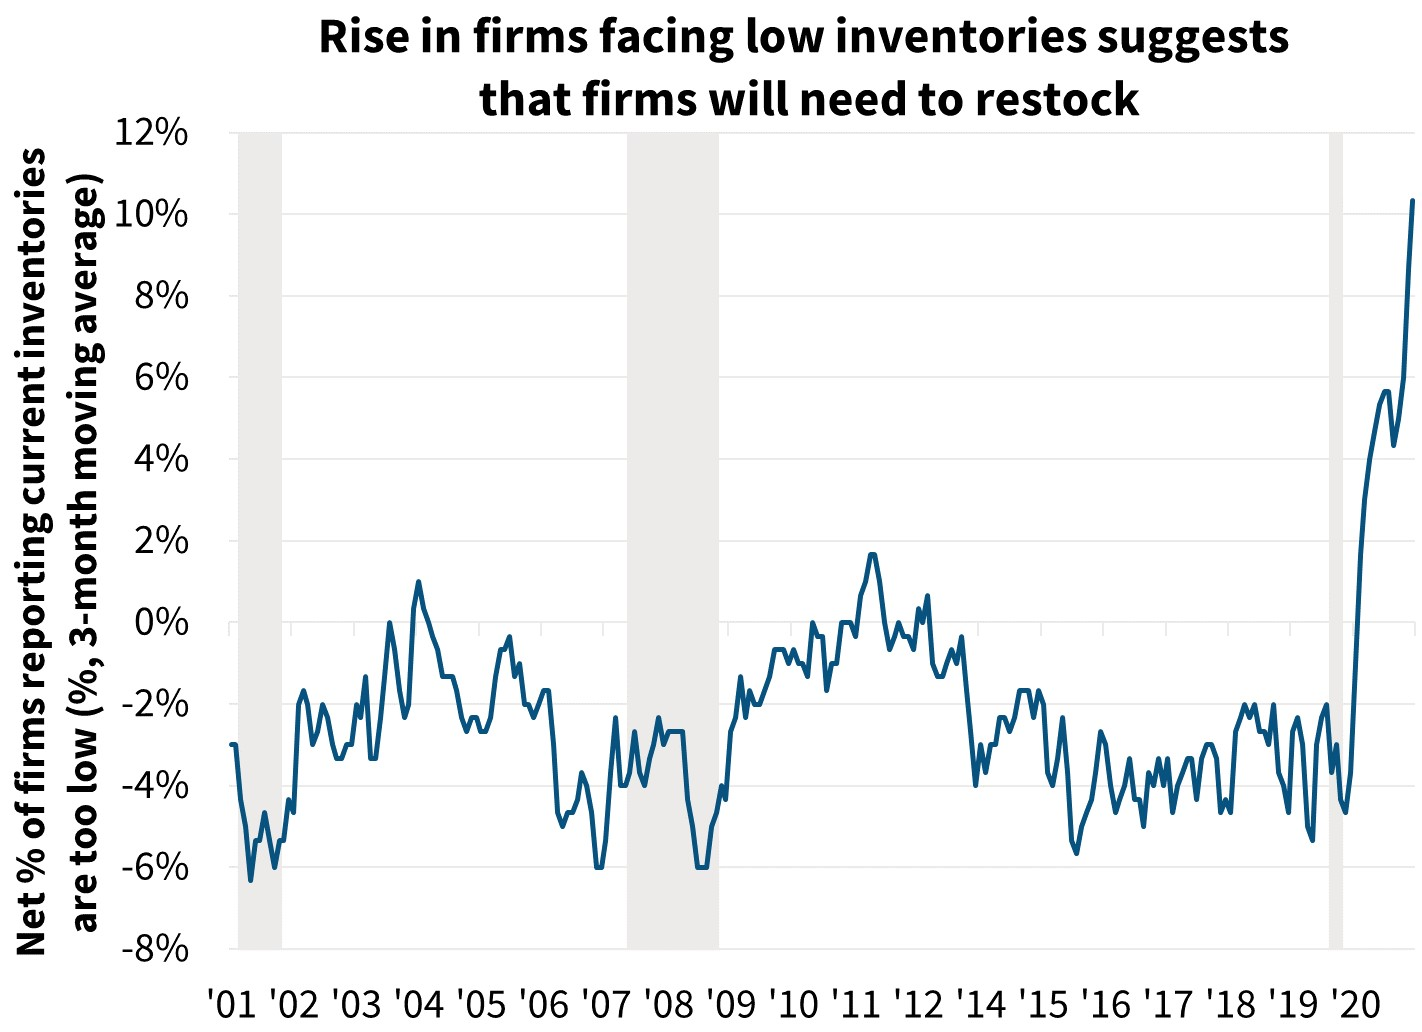 Rise in firms facing low inventories suggests that firms will need to restock